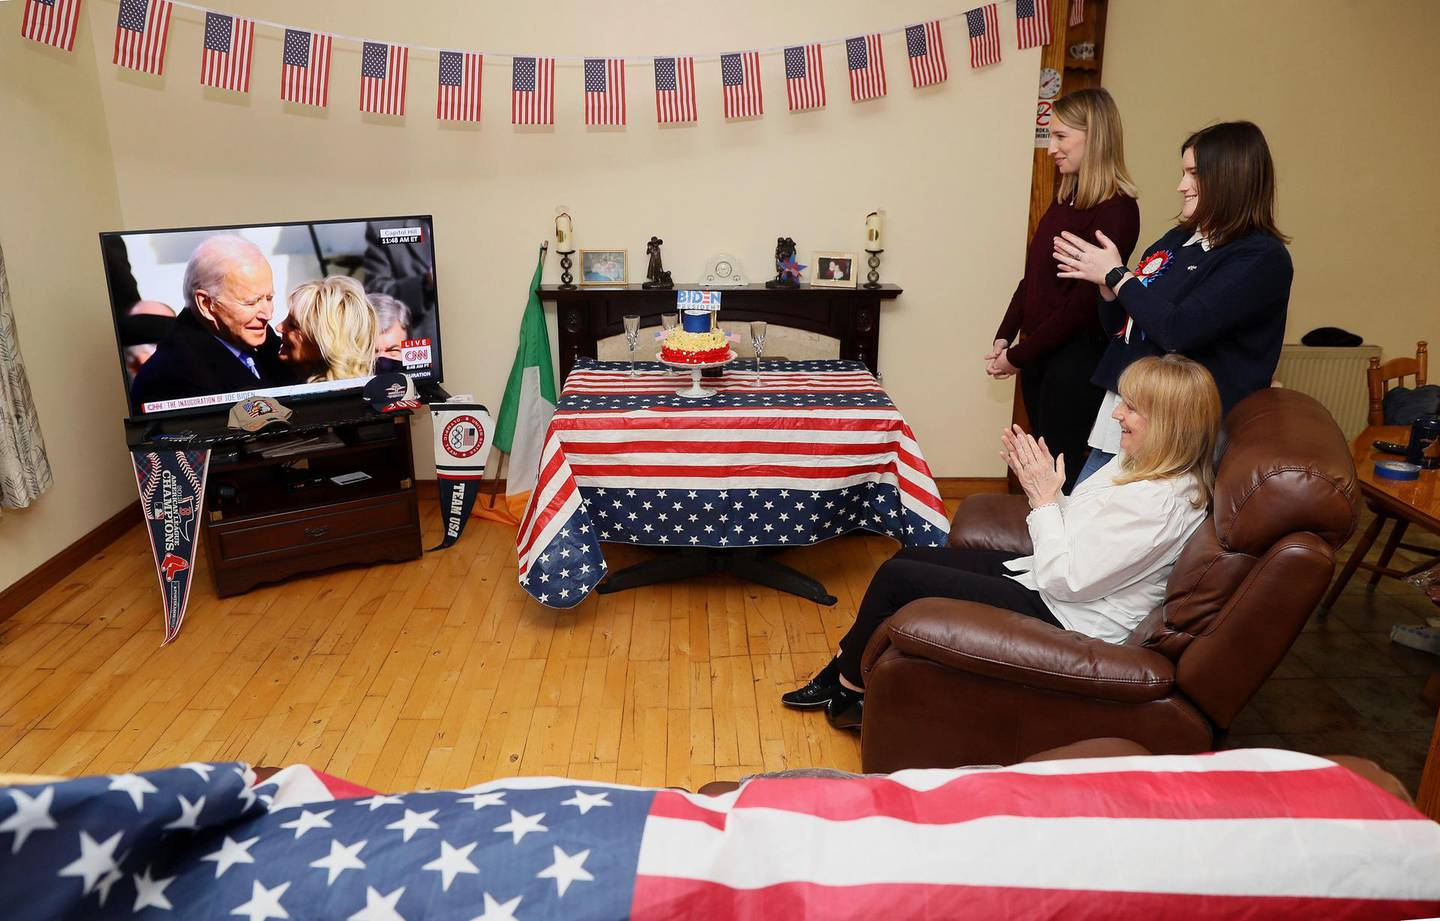 Veronica McKevitt, seated, a distant cousin of President-elect Joe Biden, and her daughters Andrea McKevitt, background right and Ciara, applaud at their home as they watch the inauguration of Joe Biden as the 46th President of the United States, in Louth, Ireland, Wednesday, Jan. 20, 2021. (Brian Lawless/PA via AP)